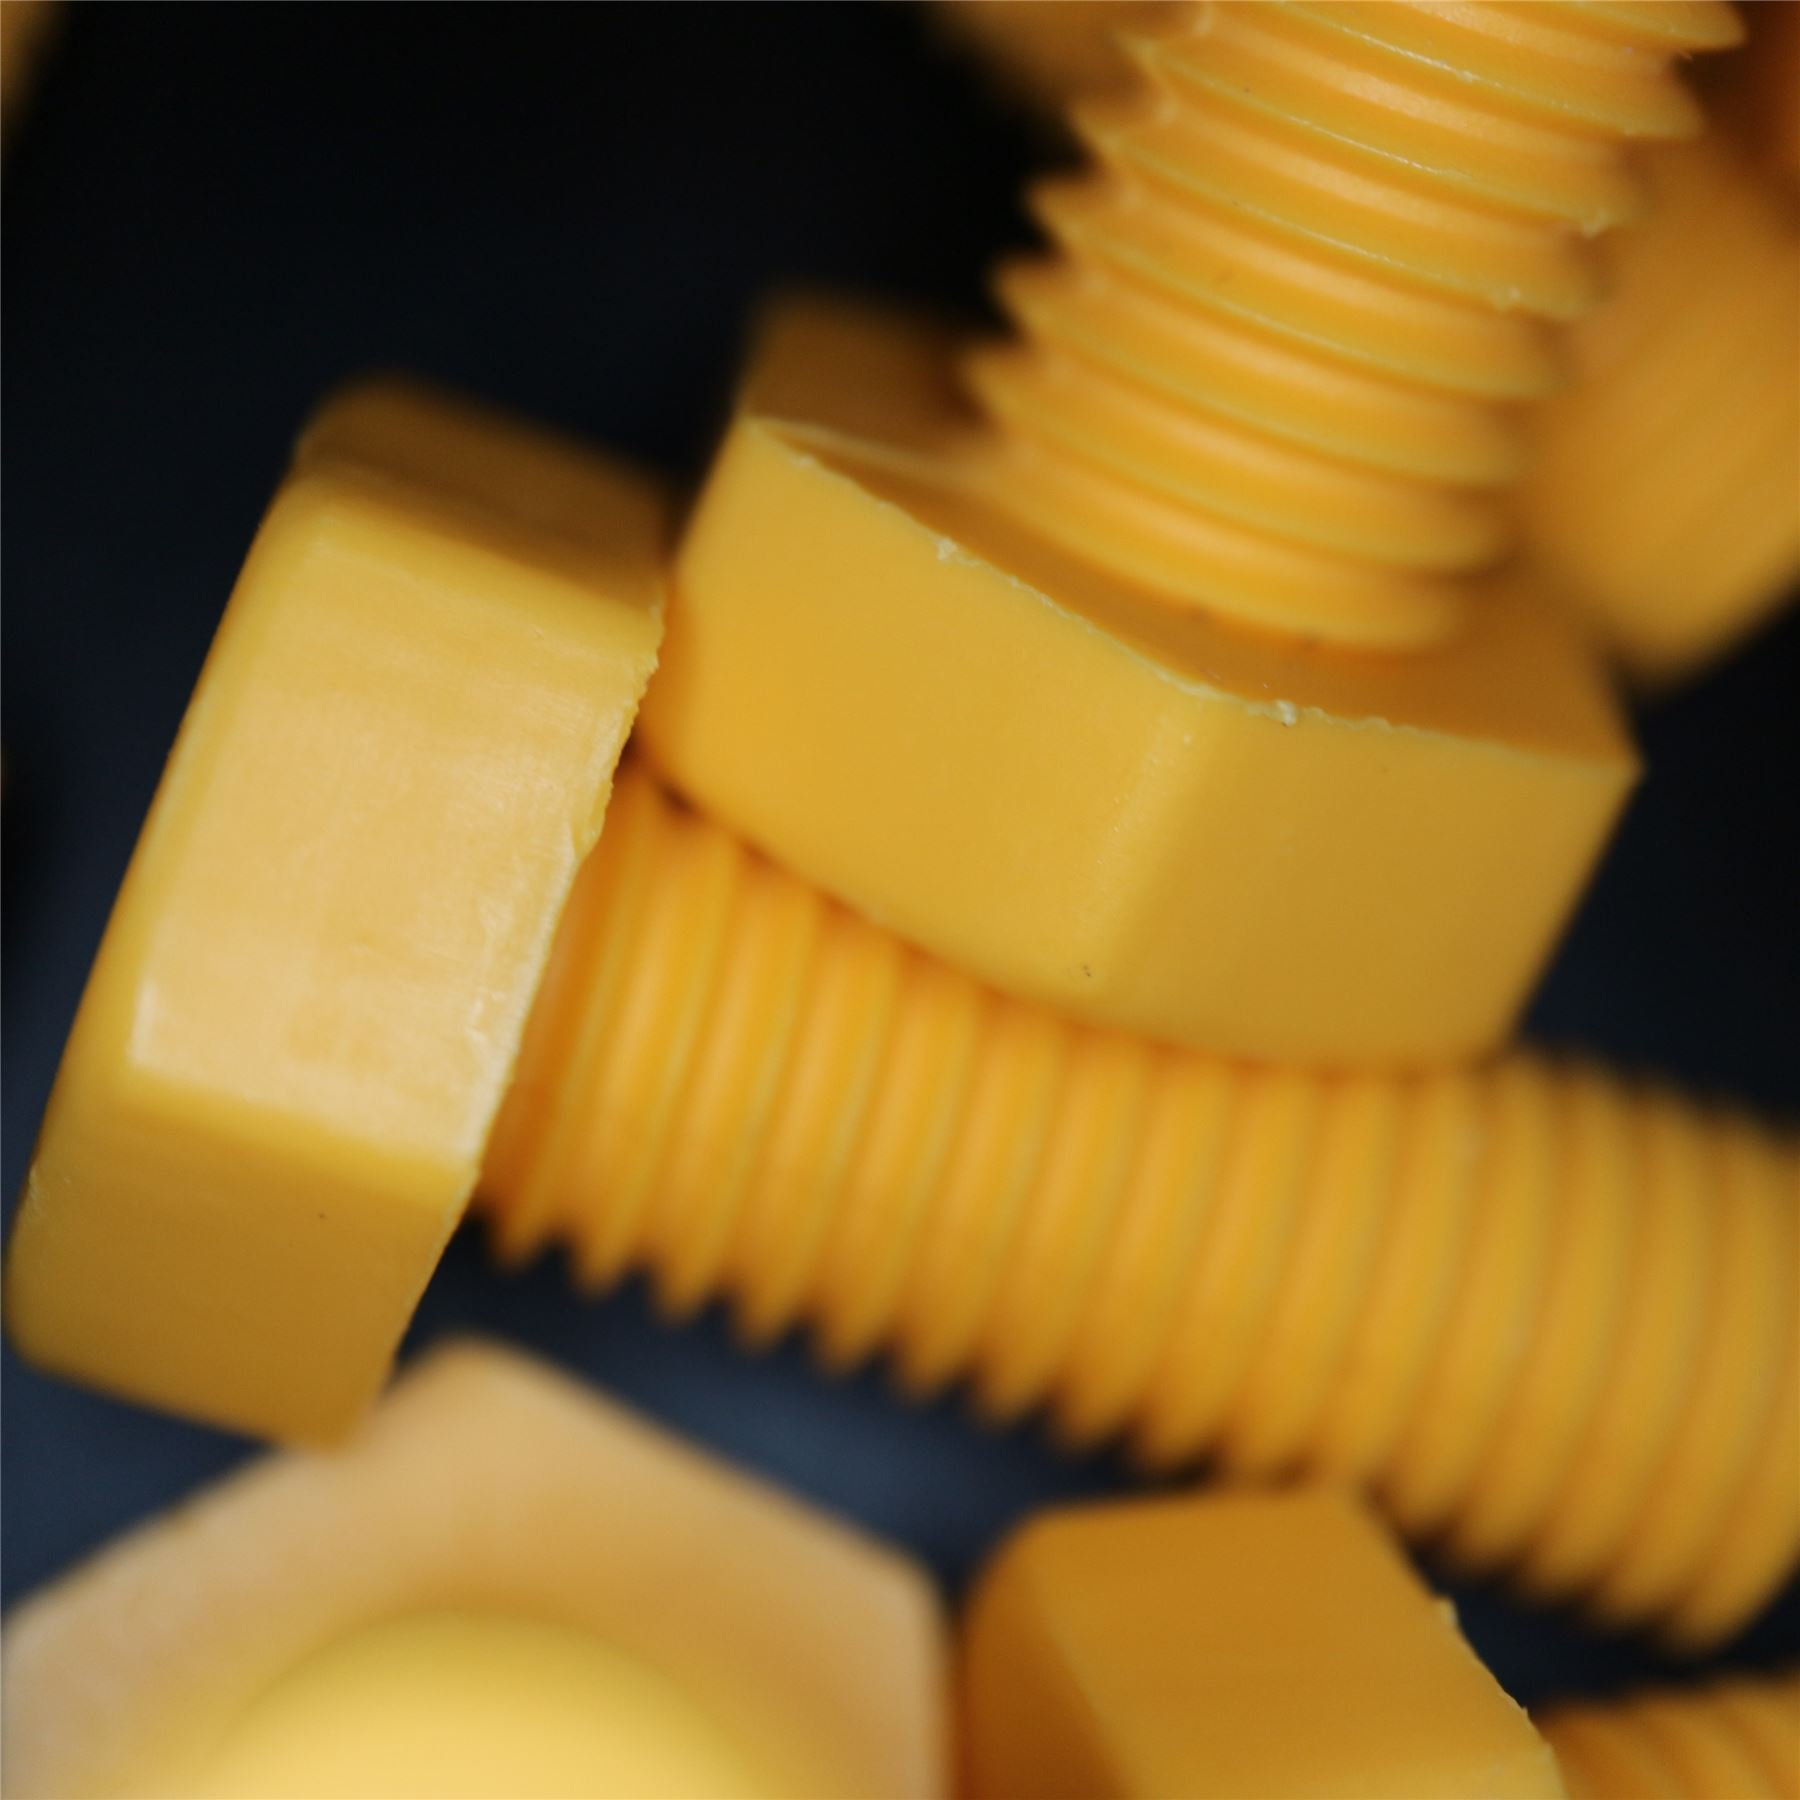 30 x Yellow Screw Polypropylene (PP) Plastic Nuts and Bolts, M10 x 25mm, Water Resistant, Anti-Corrosion, Chemical Resistant, Electrical Insulator, Strong. by Caterpillar Red